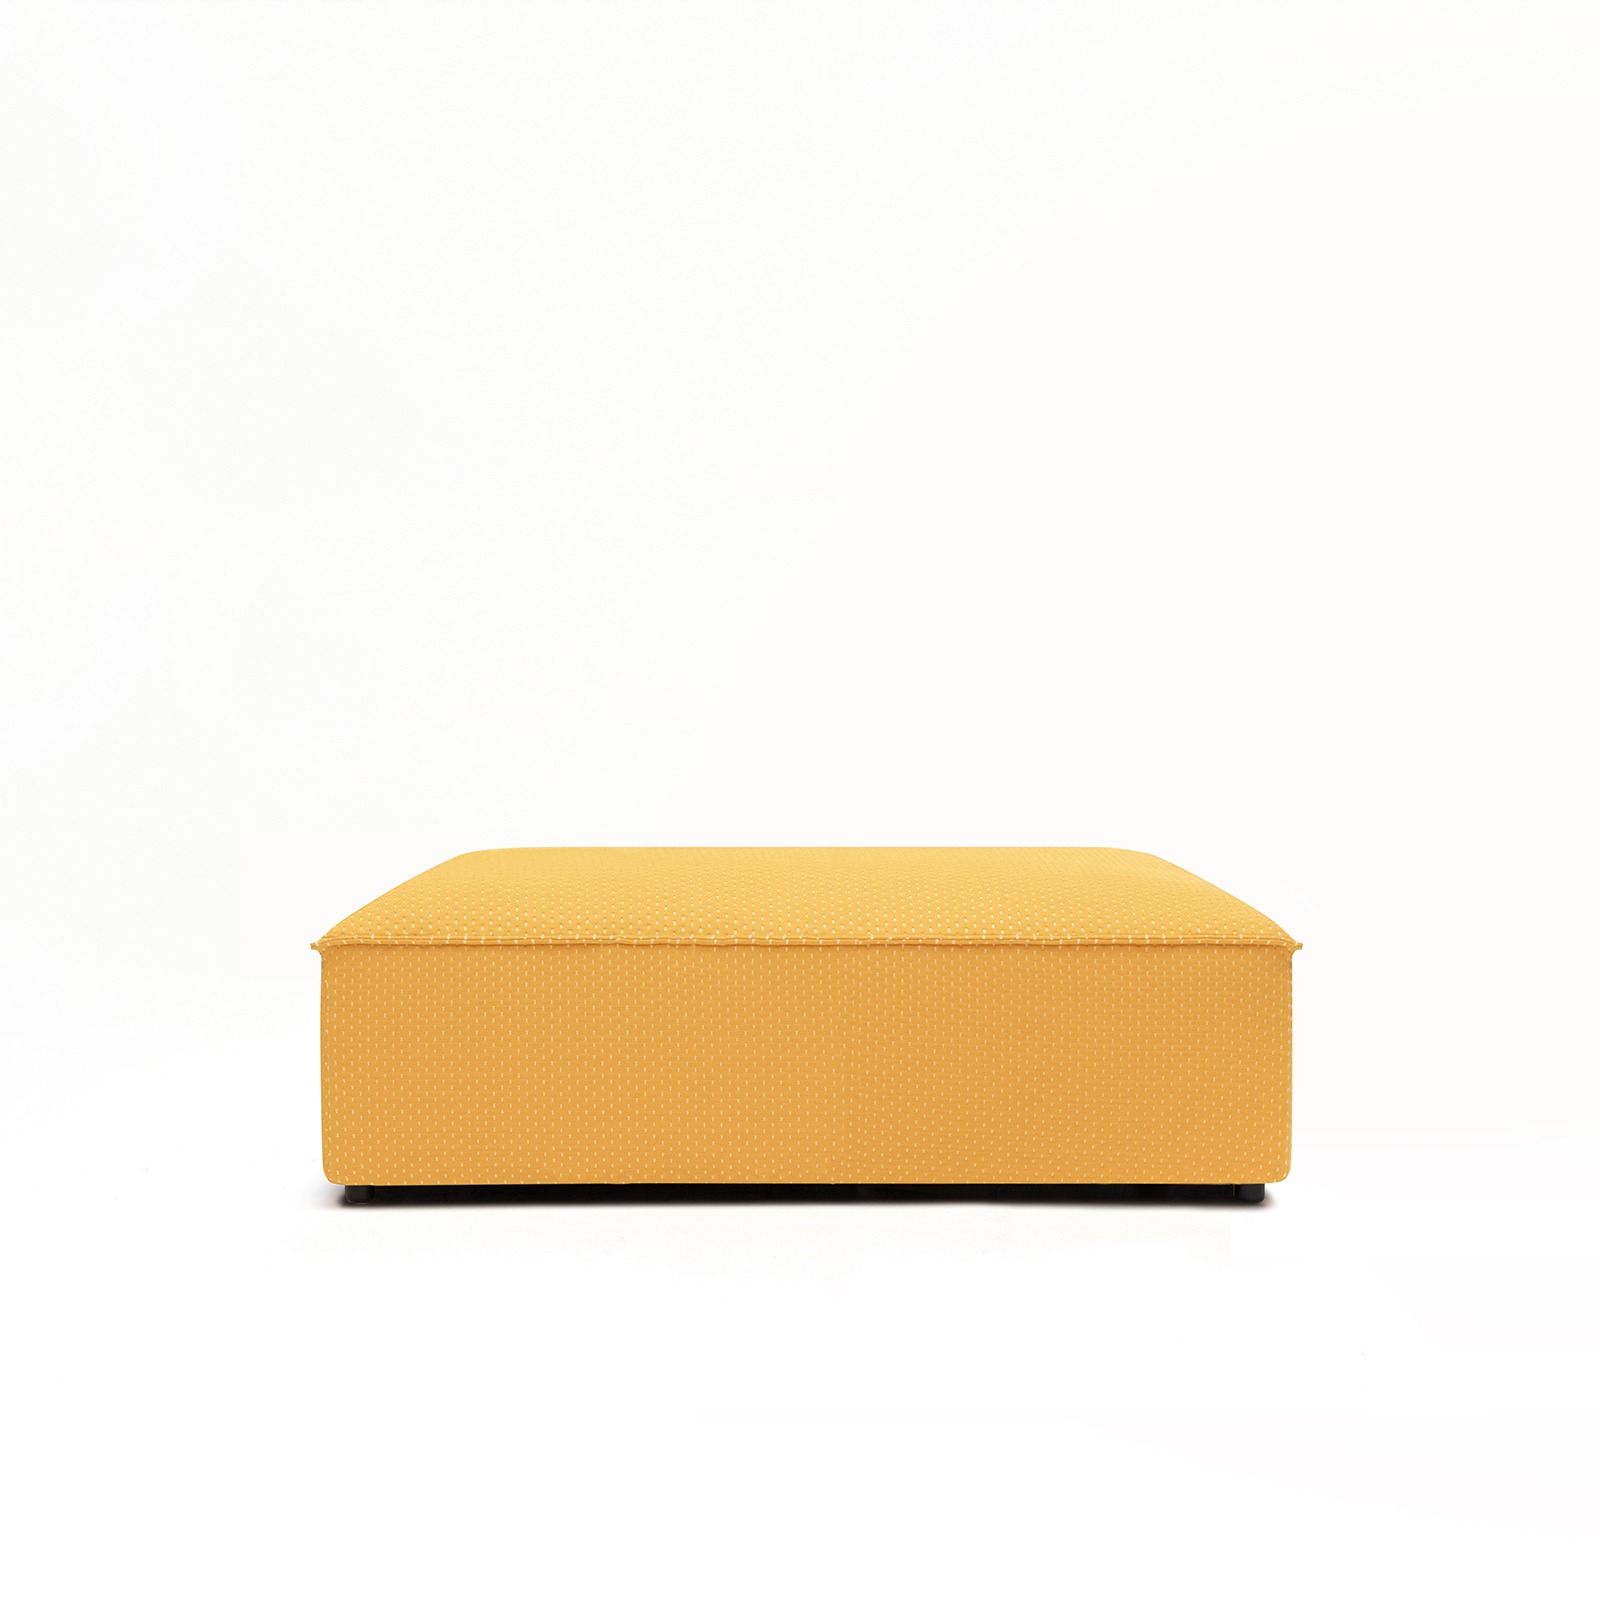 Permanent Future Easey Sofa Ottoman Rectangle in Zoom Yellow Fabric